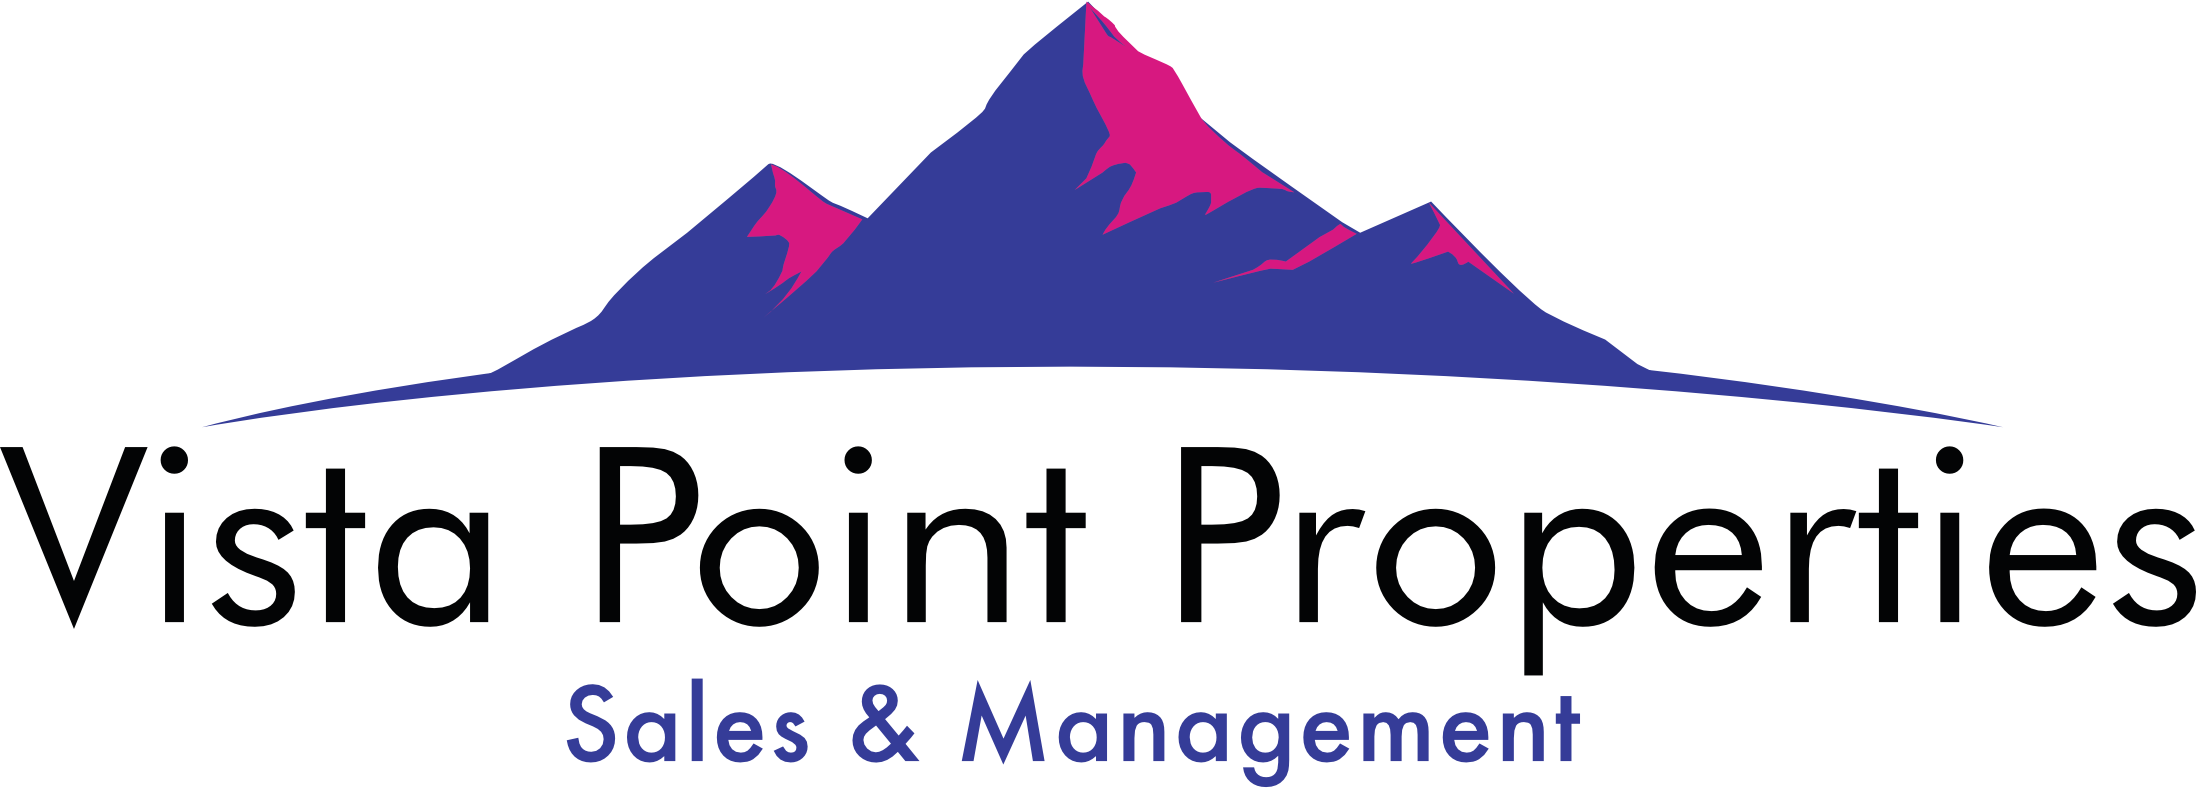 Vista Point Properties |   Utility Companies and Providers